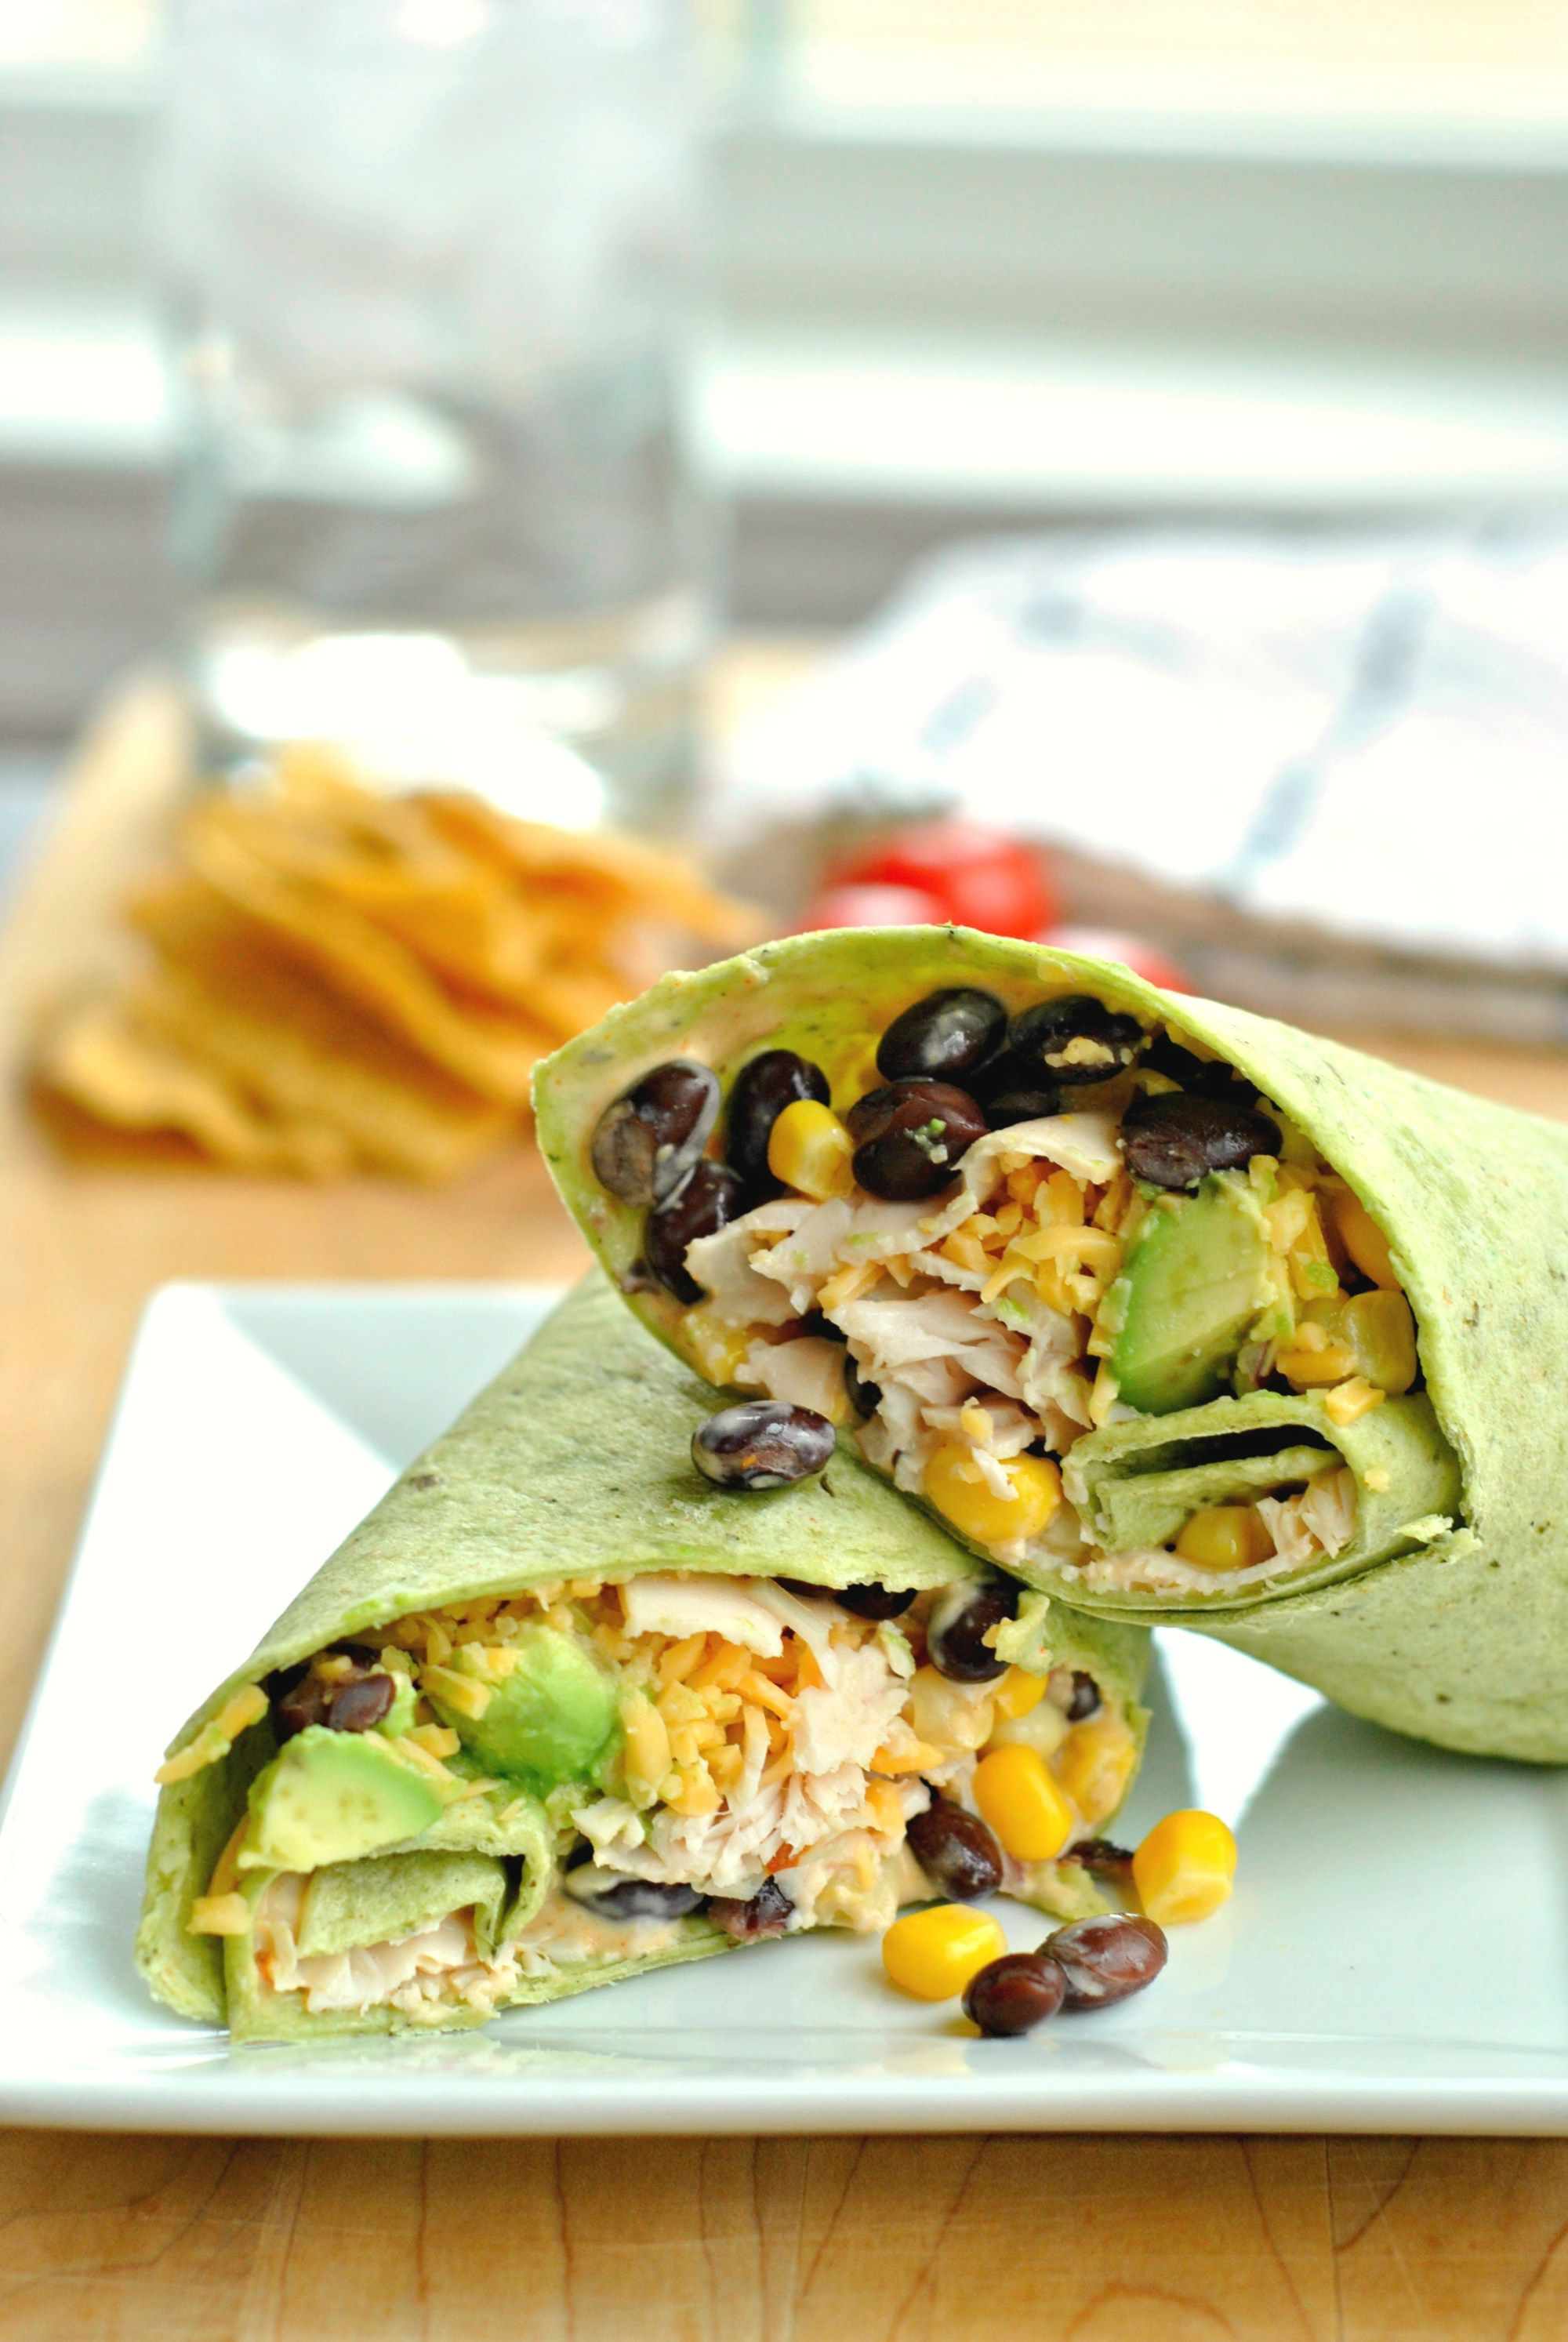 Planning lunch is hard. This Southwest Turkey Wrap makes it easy! Skinny, fast, and full of great southwest flavor!